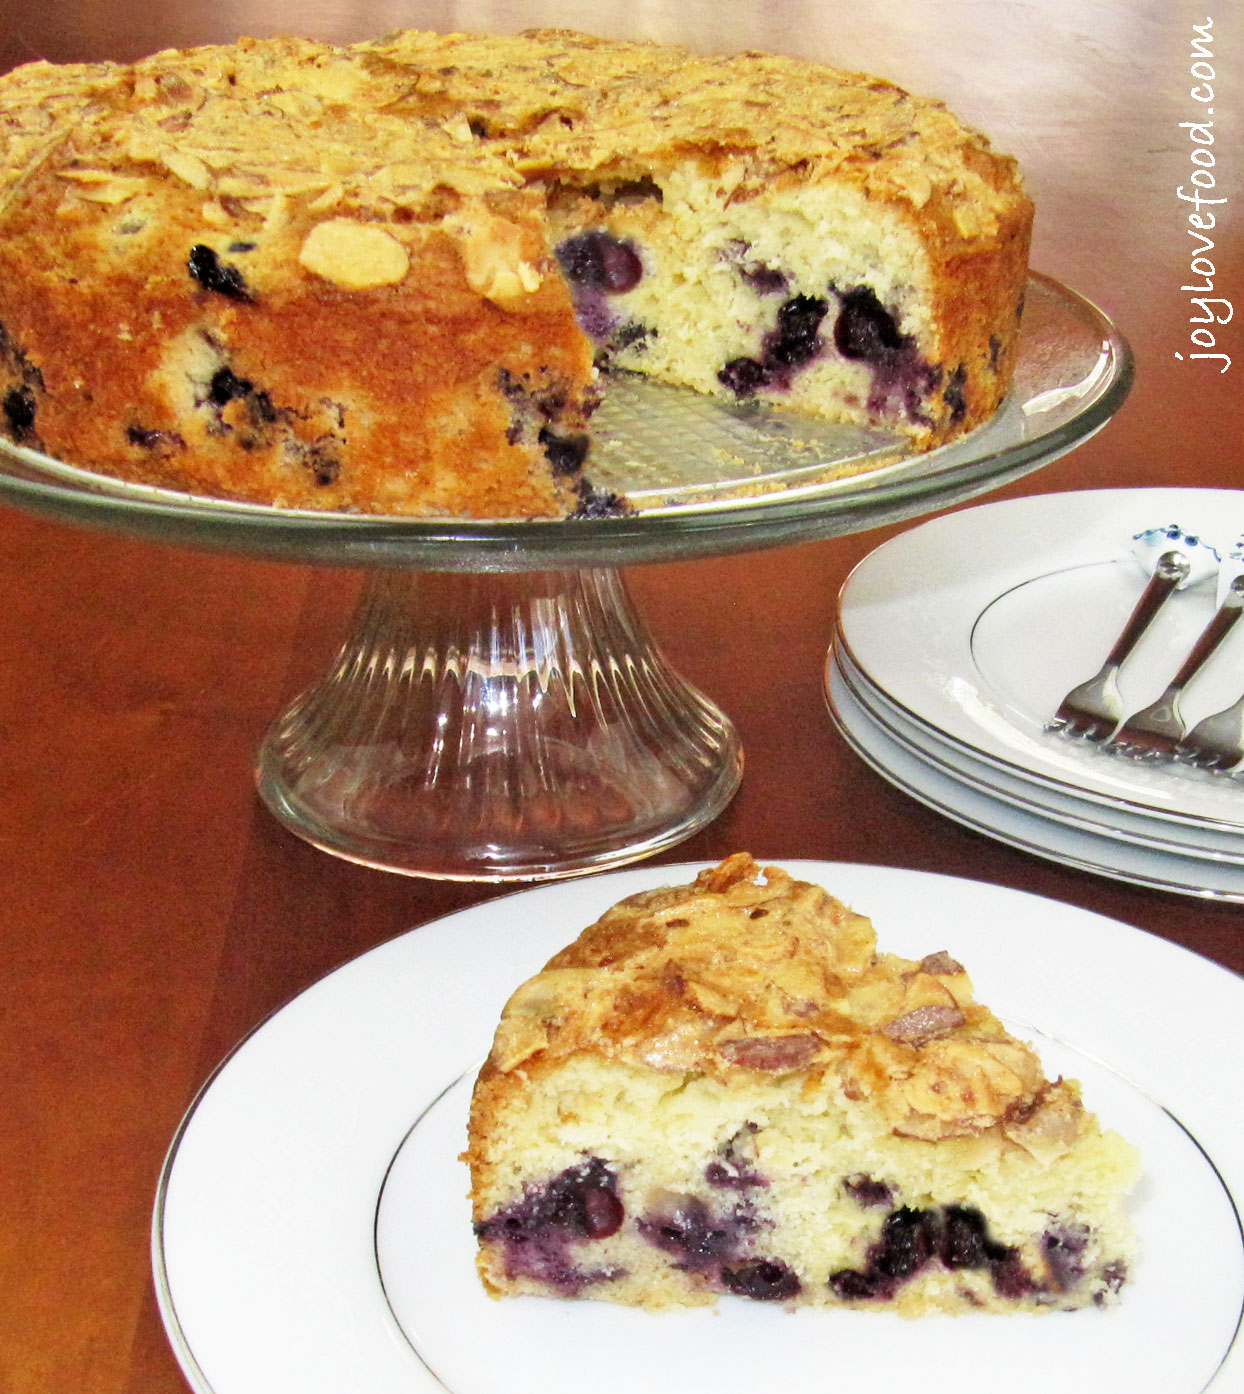 Blueberry Almond Coffee Cake - Joy Love Food